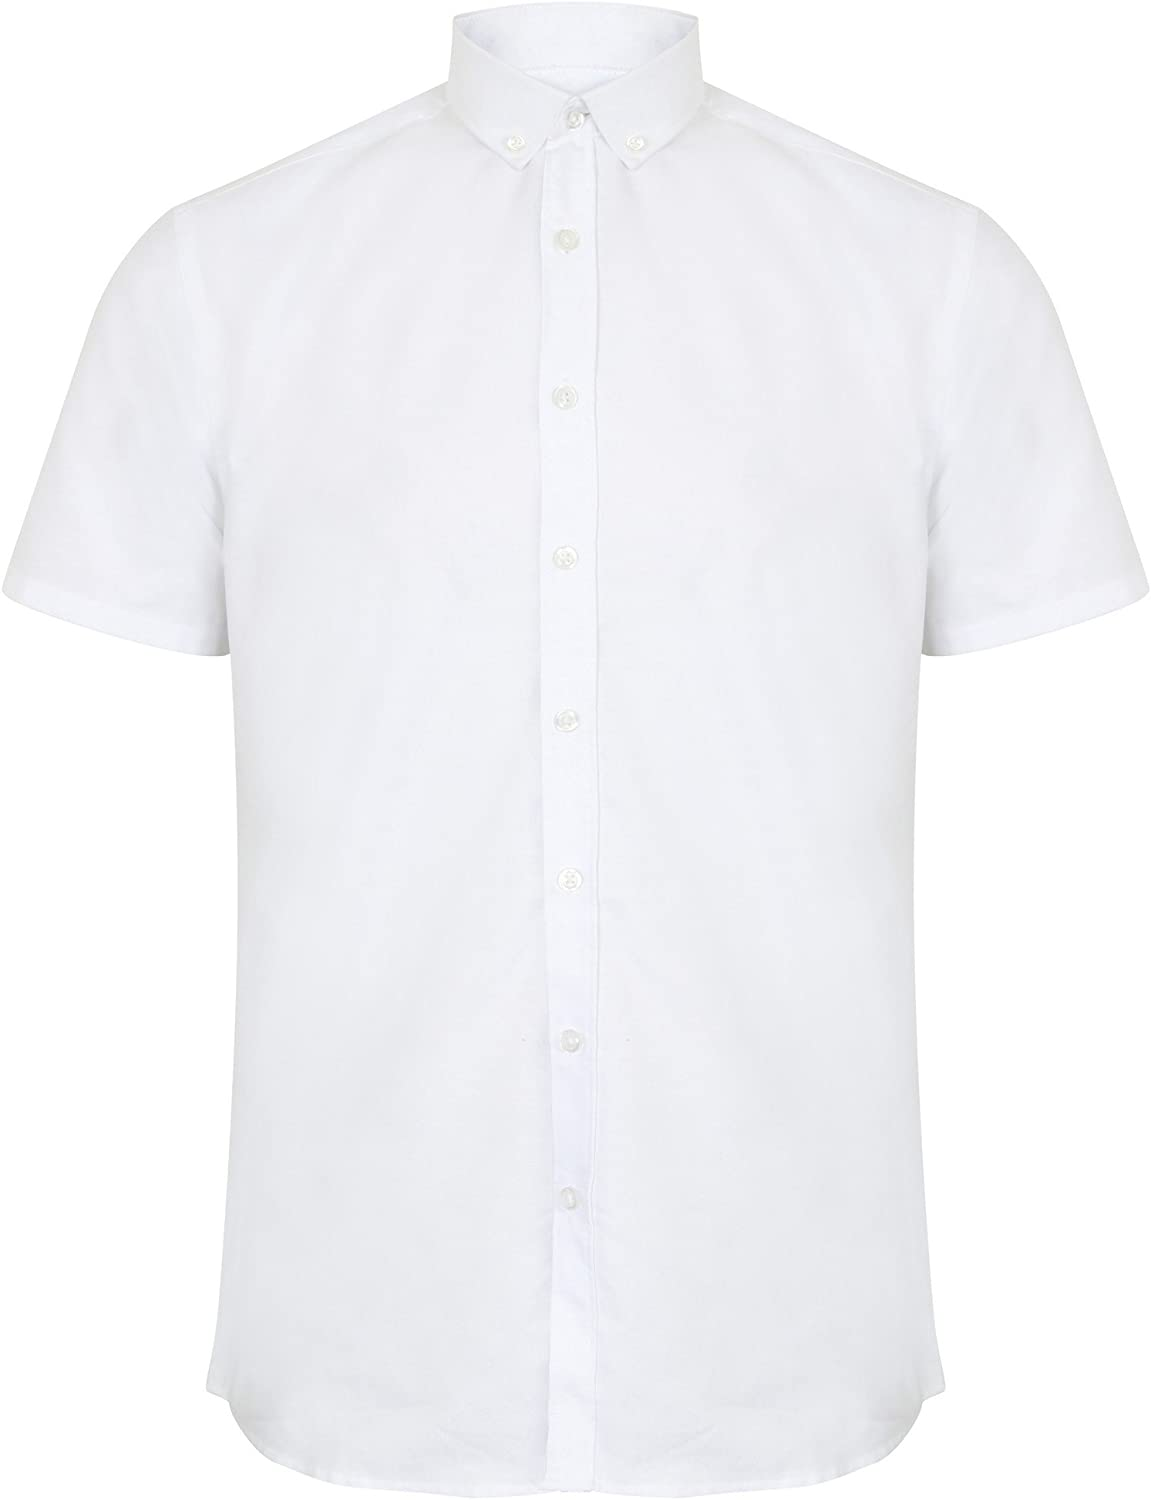 Henbury Mens Modern Short Sleeve Oxford Shirt